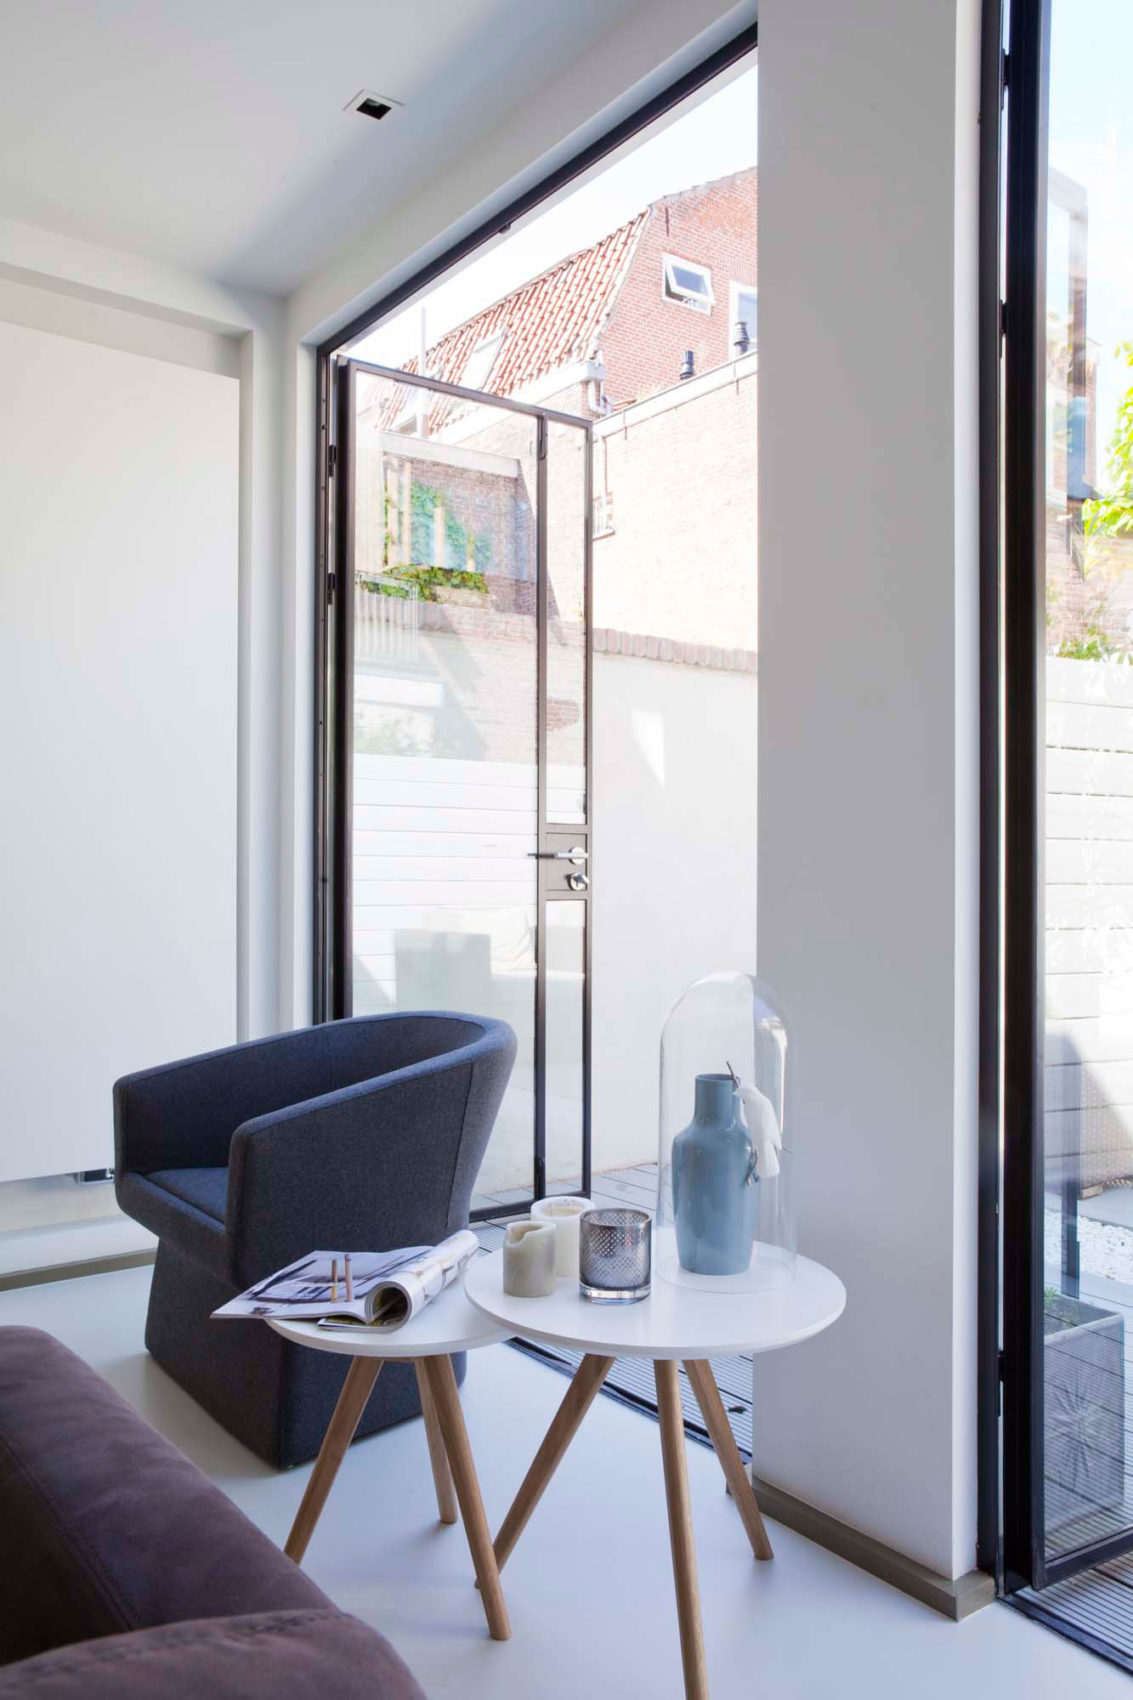 Canal house by KEMPE& (7)